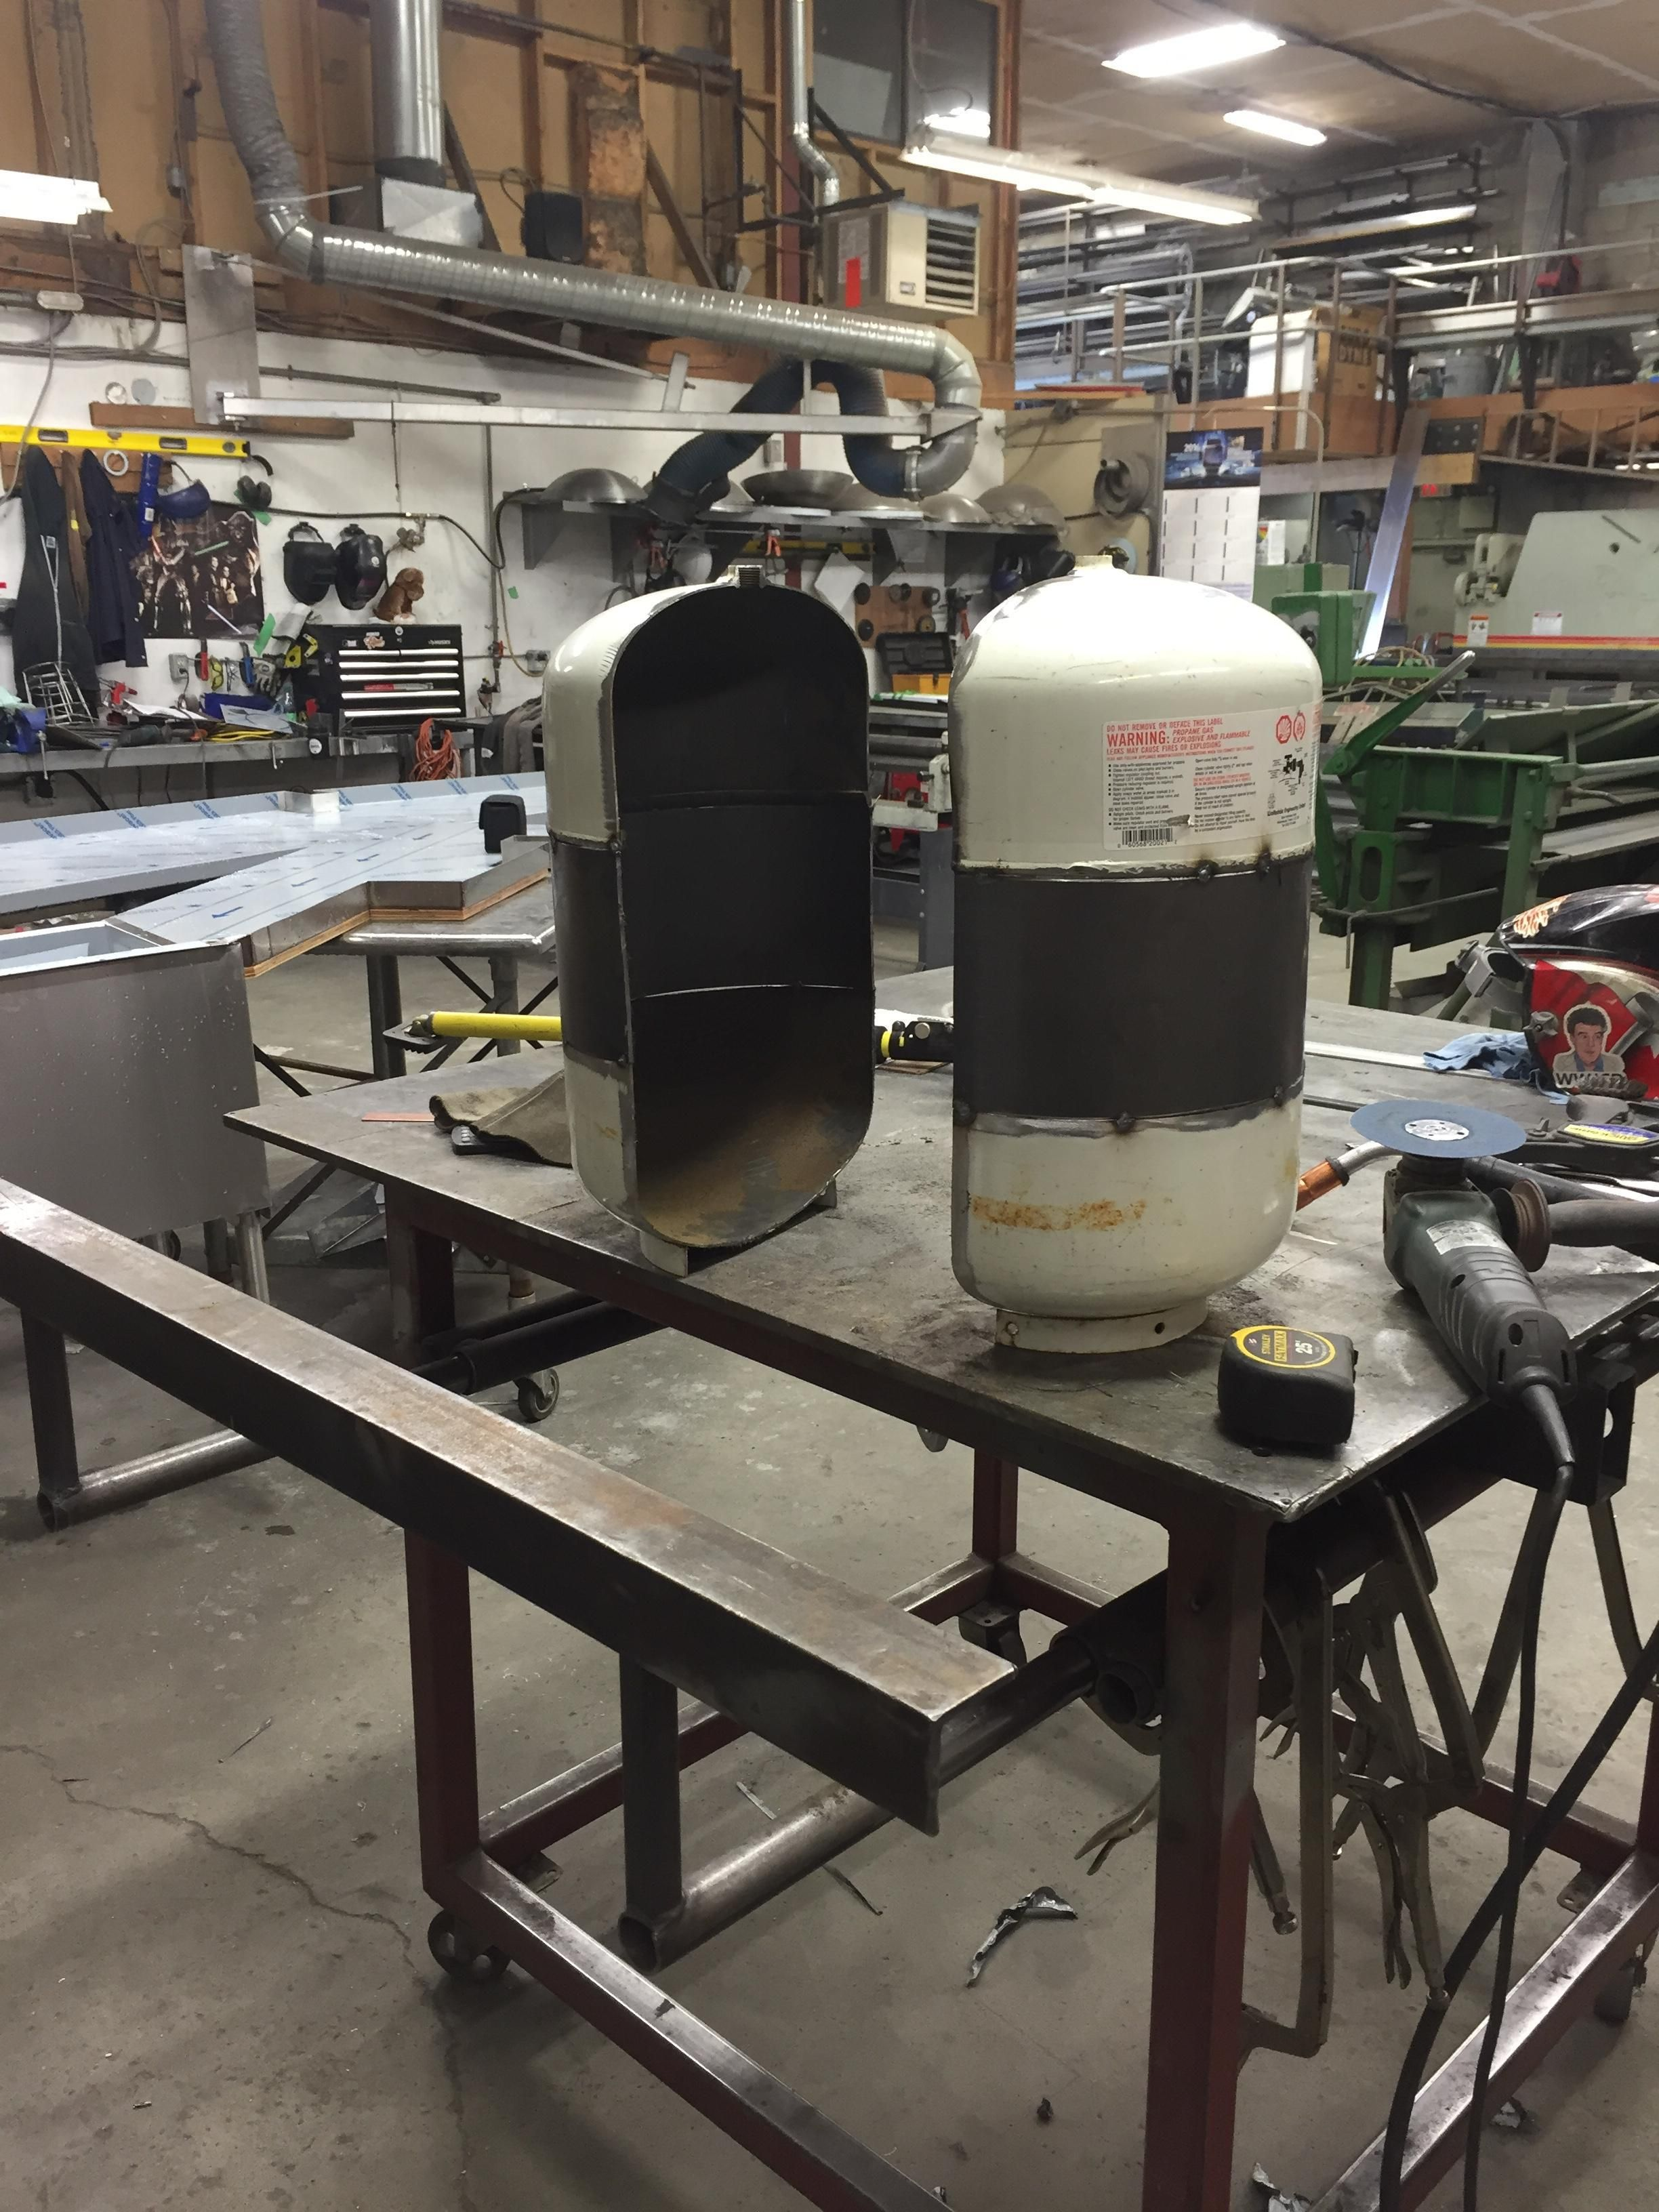 Transforming A Propane Tank Into A Vw Bus Inspired Fire Pit Welding Projects Propane Tank Metal Welding